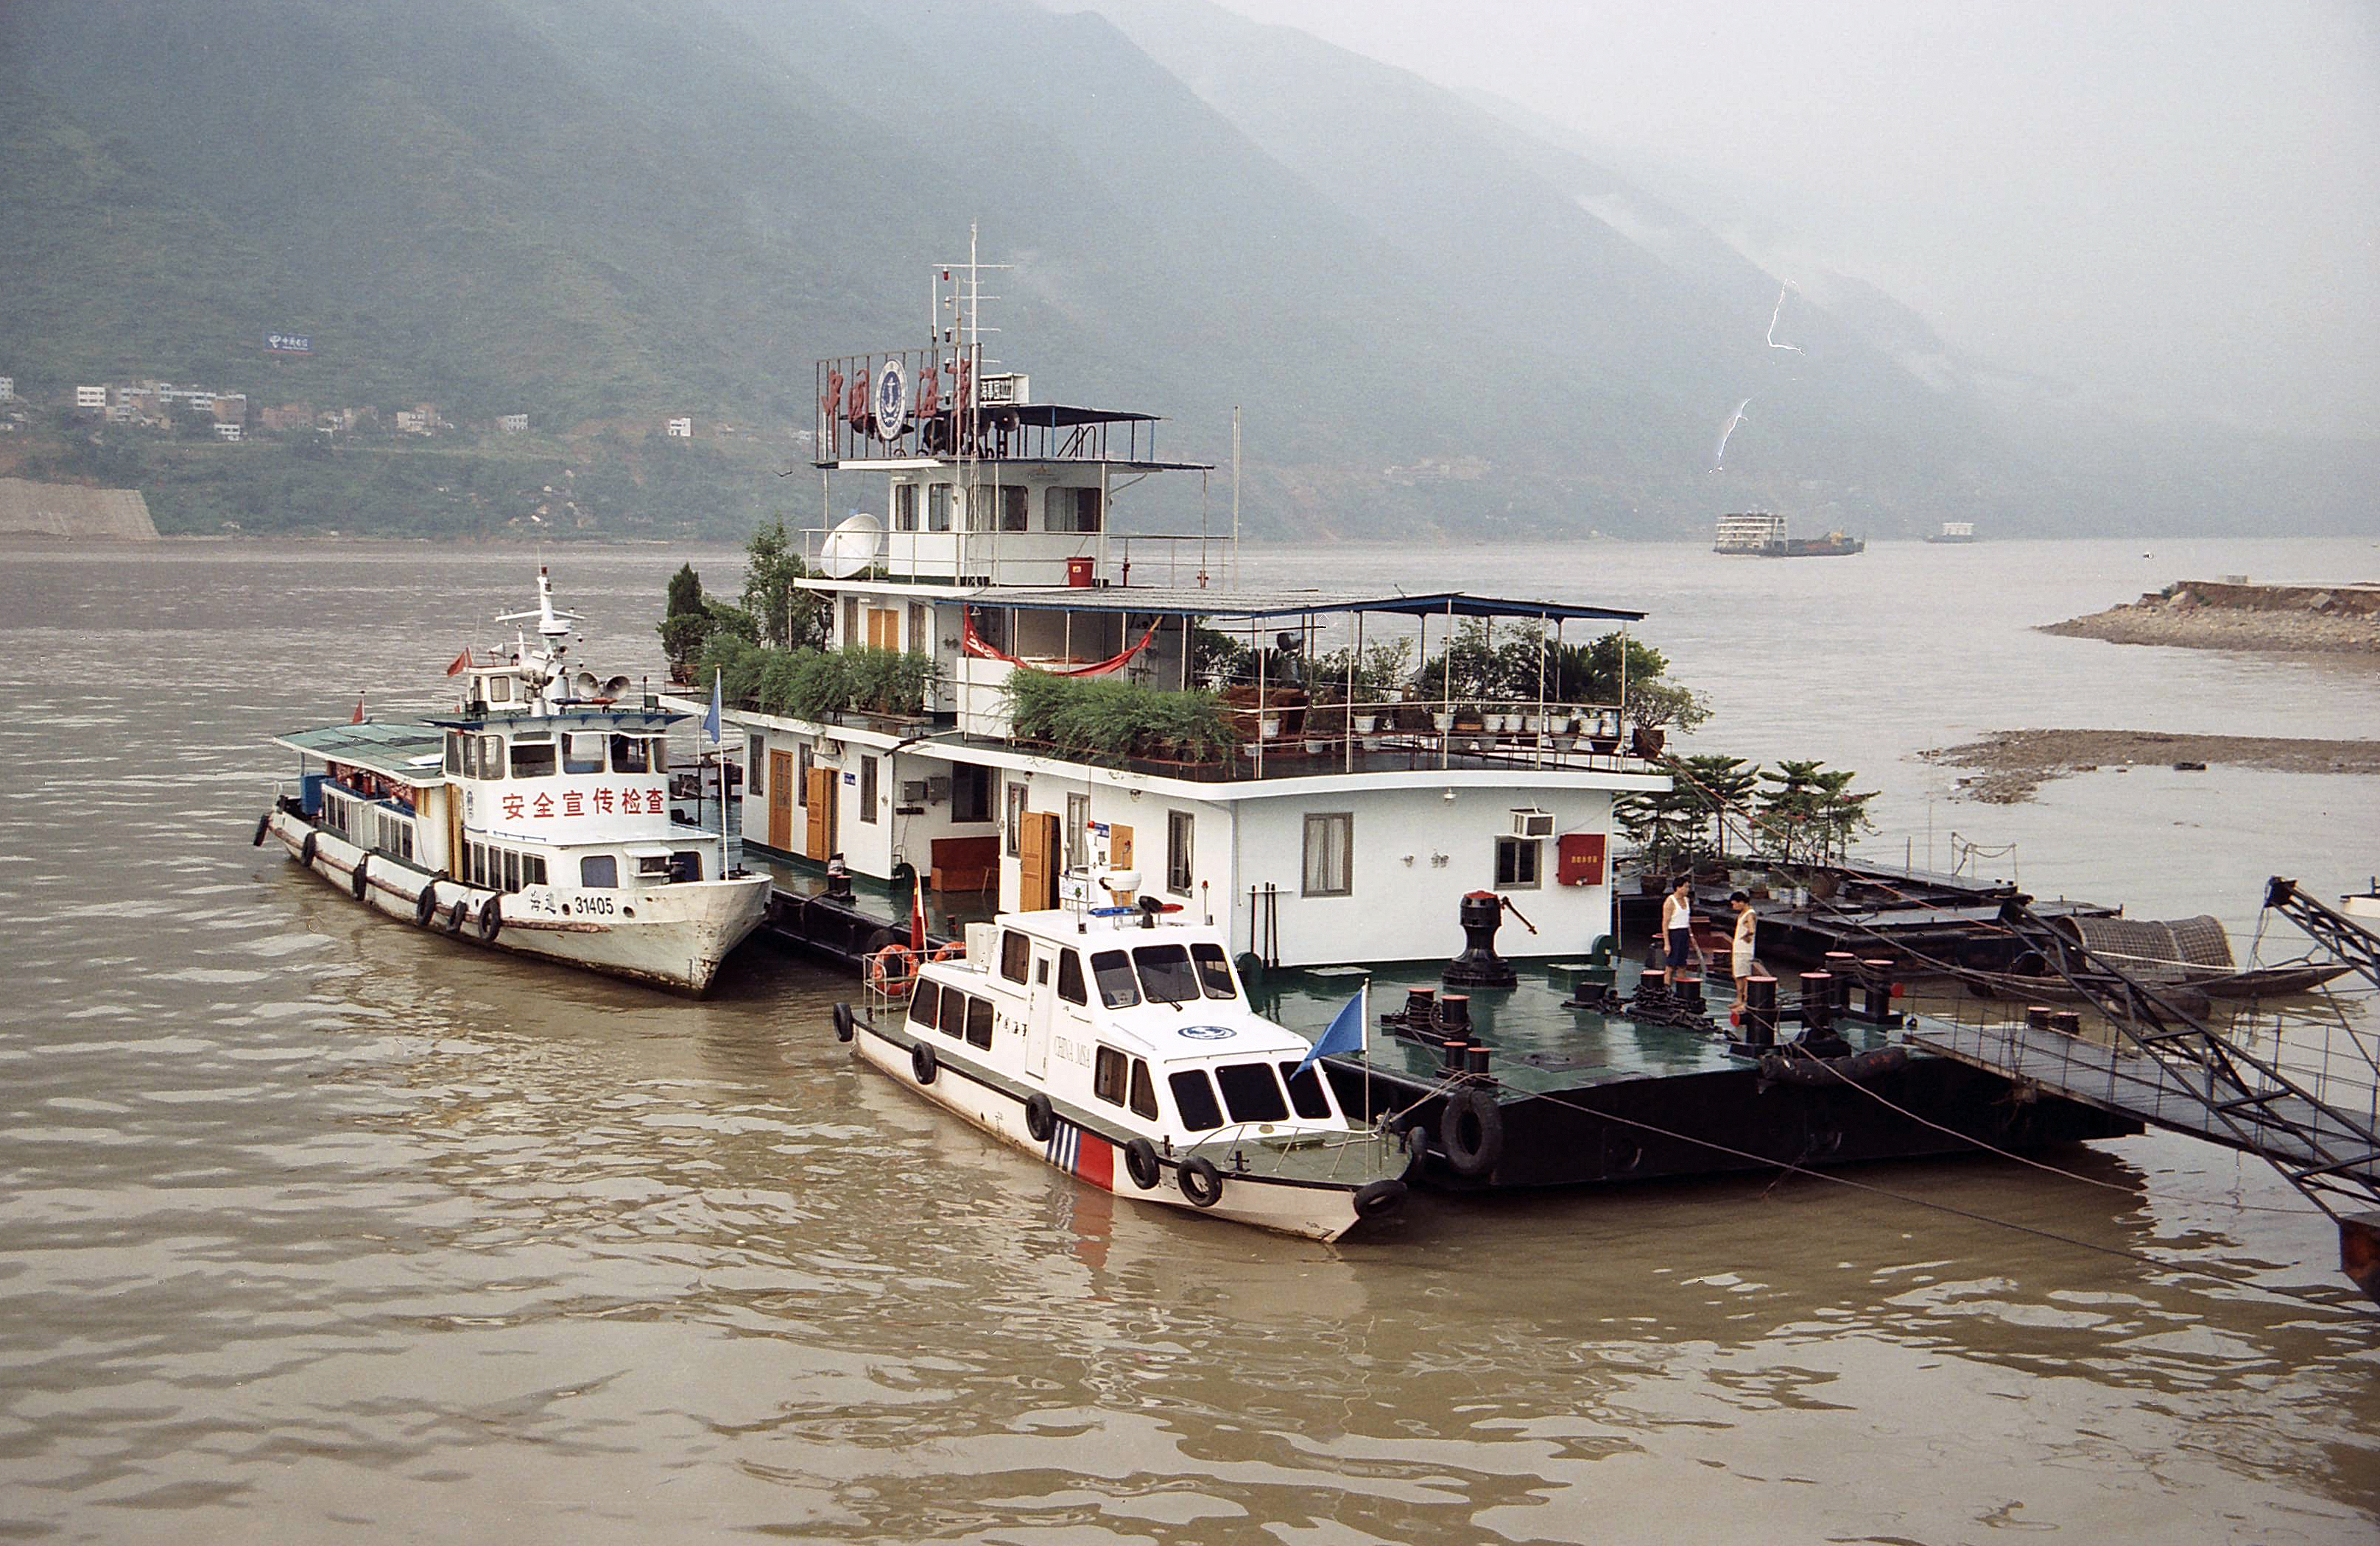 Daning river, Hubei China 3.jpg - Daning river